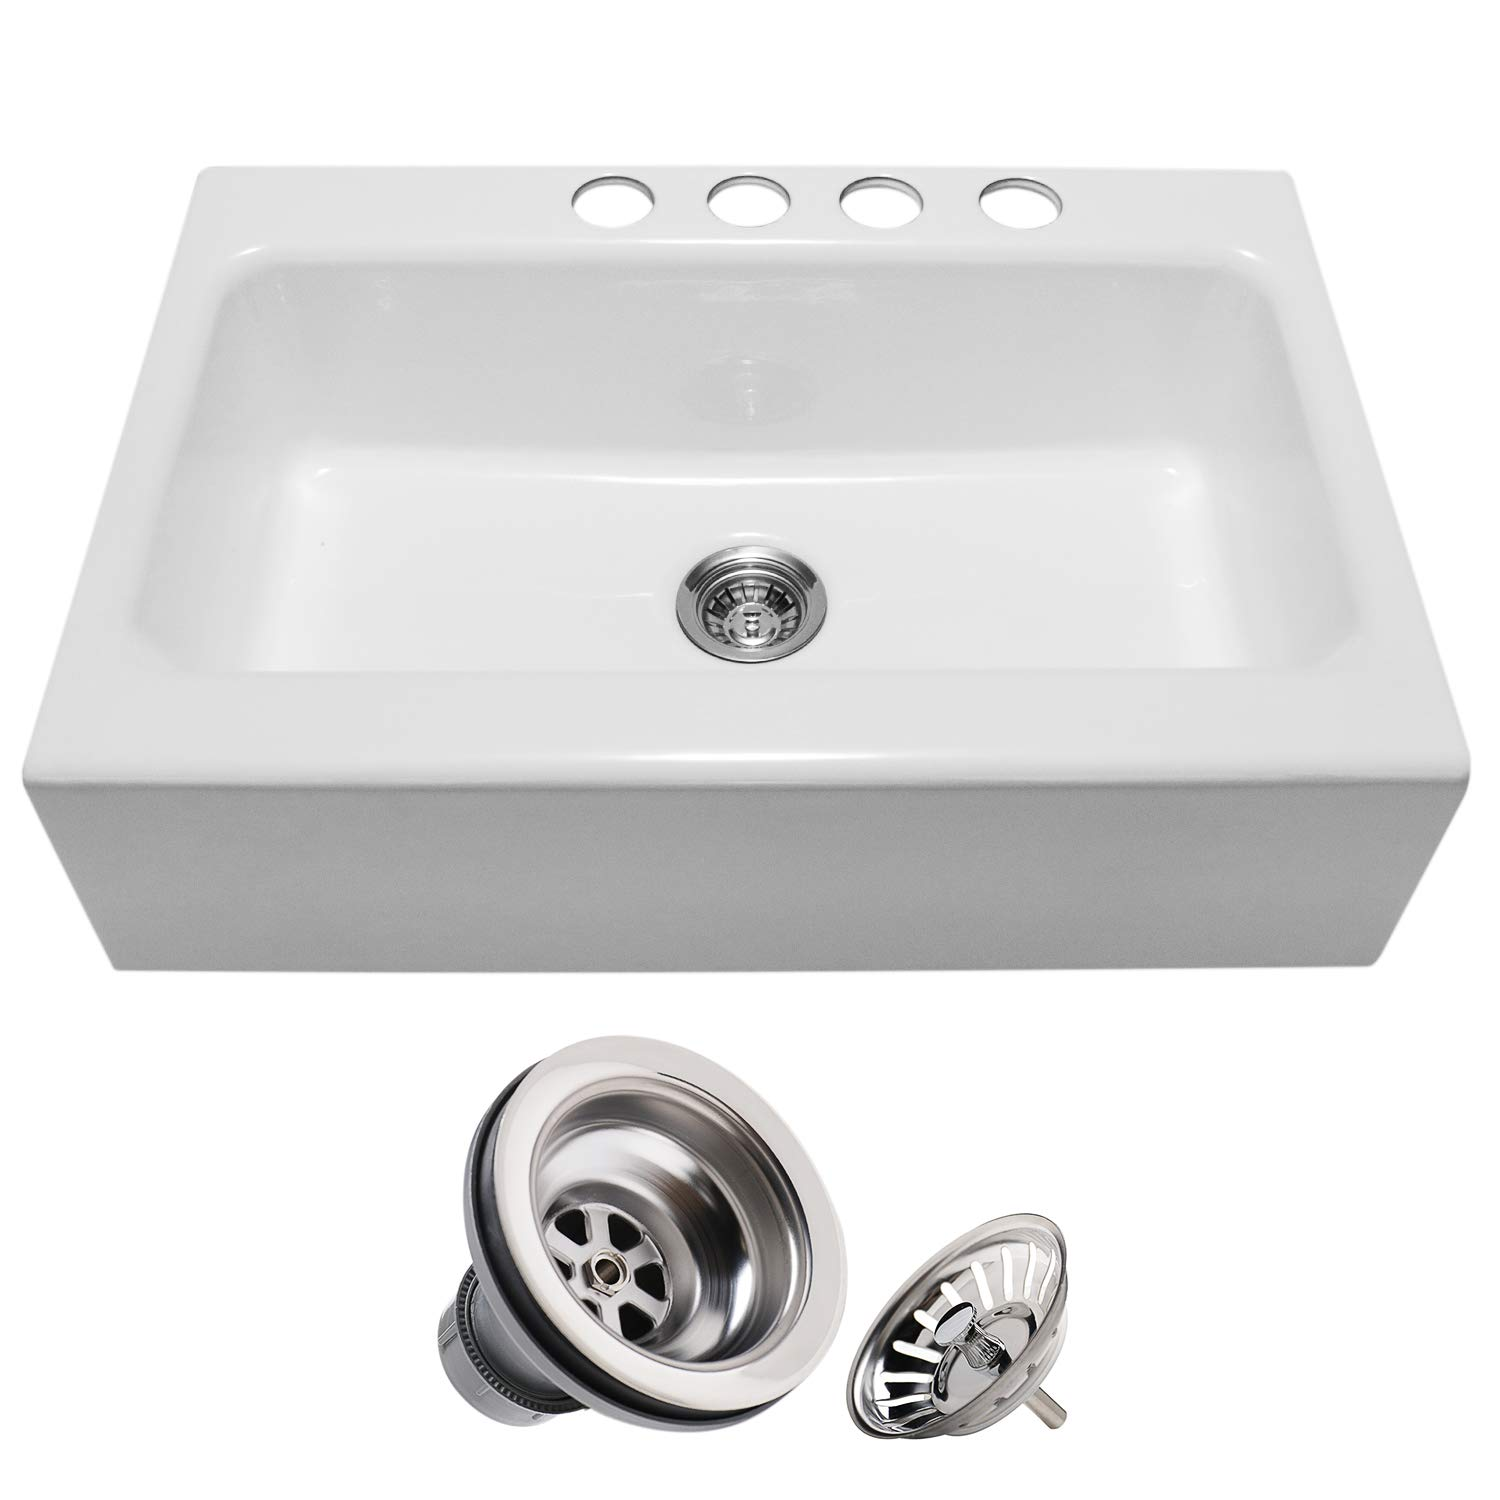 Enbol EFS3322 33 Inch White Modern Enameled Cast Iron Apron Front Farmhouse  Undermount Kitchen Sink included Basket Strainer, with 4 Faucet Holes